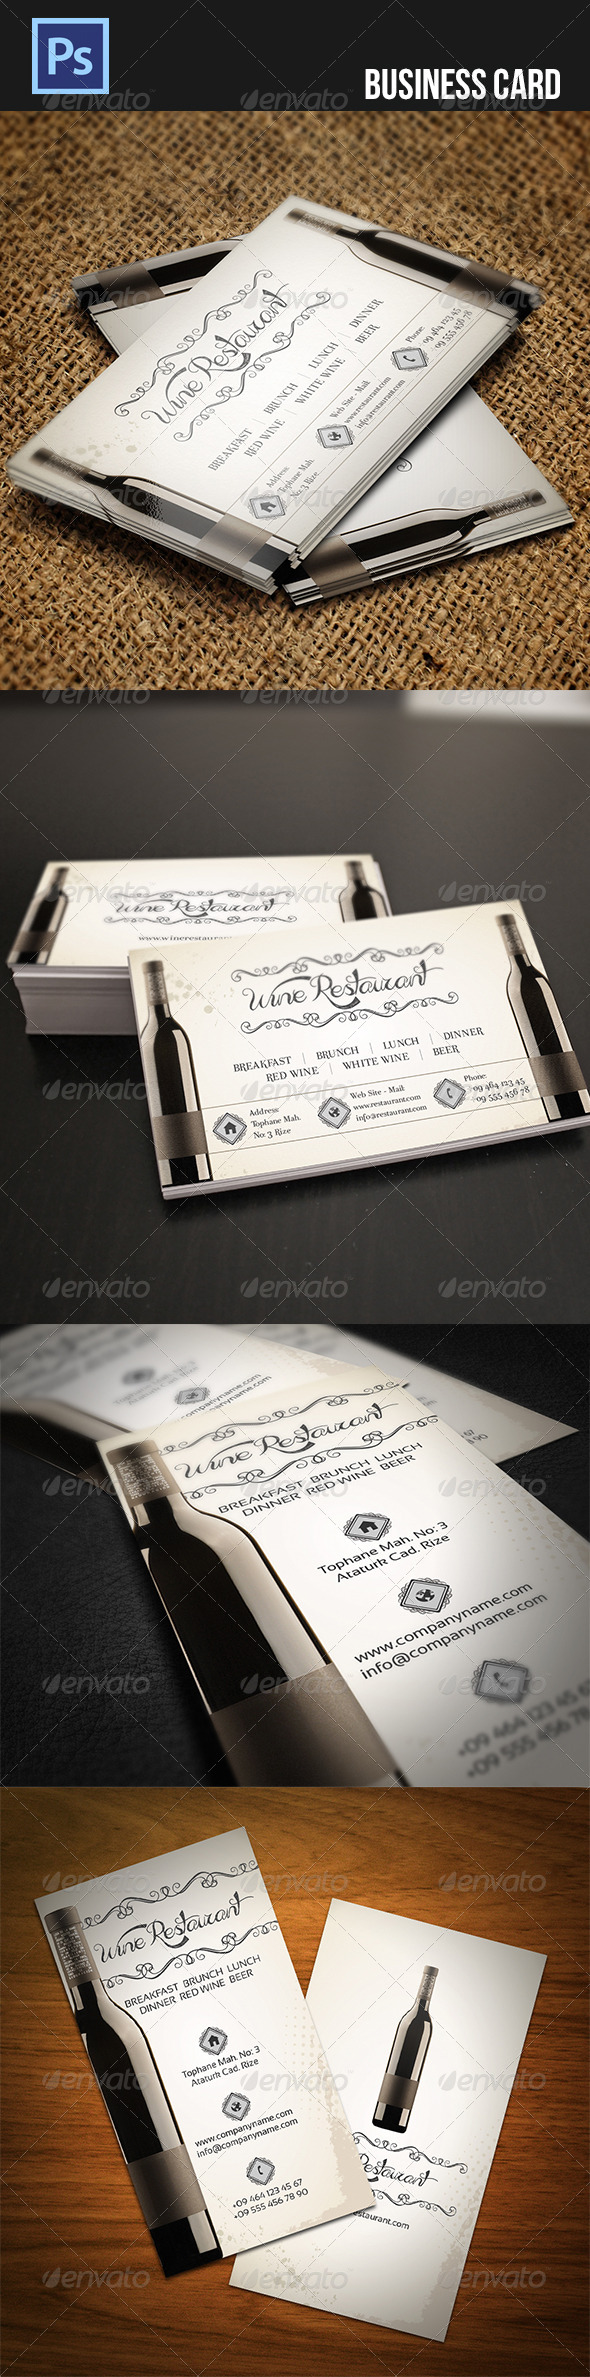 Business Card - Industry Specific Business Cards